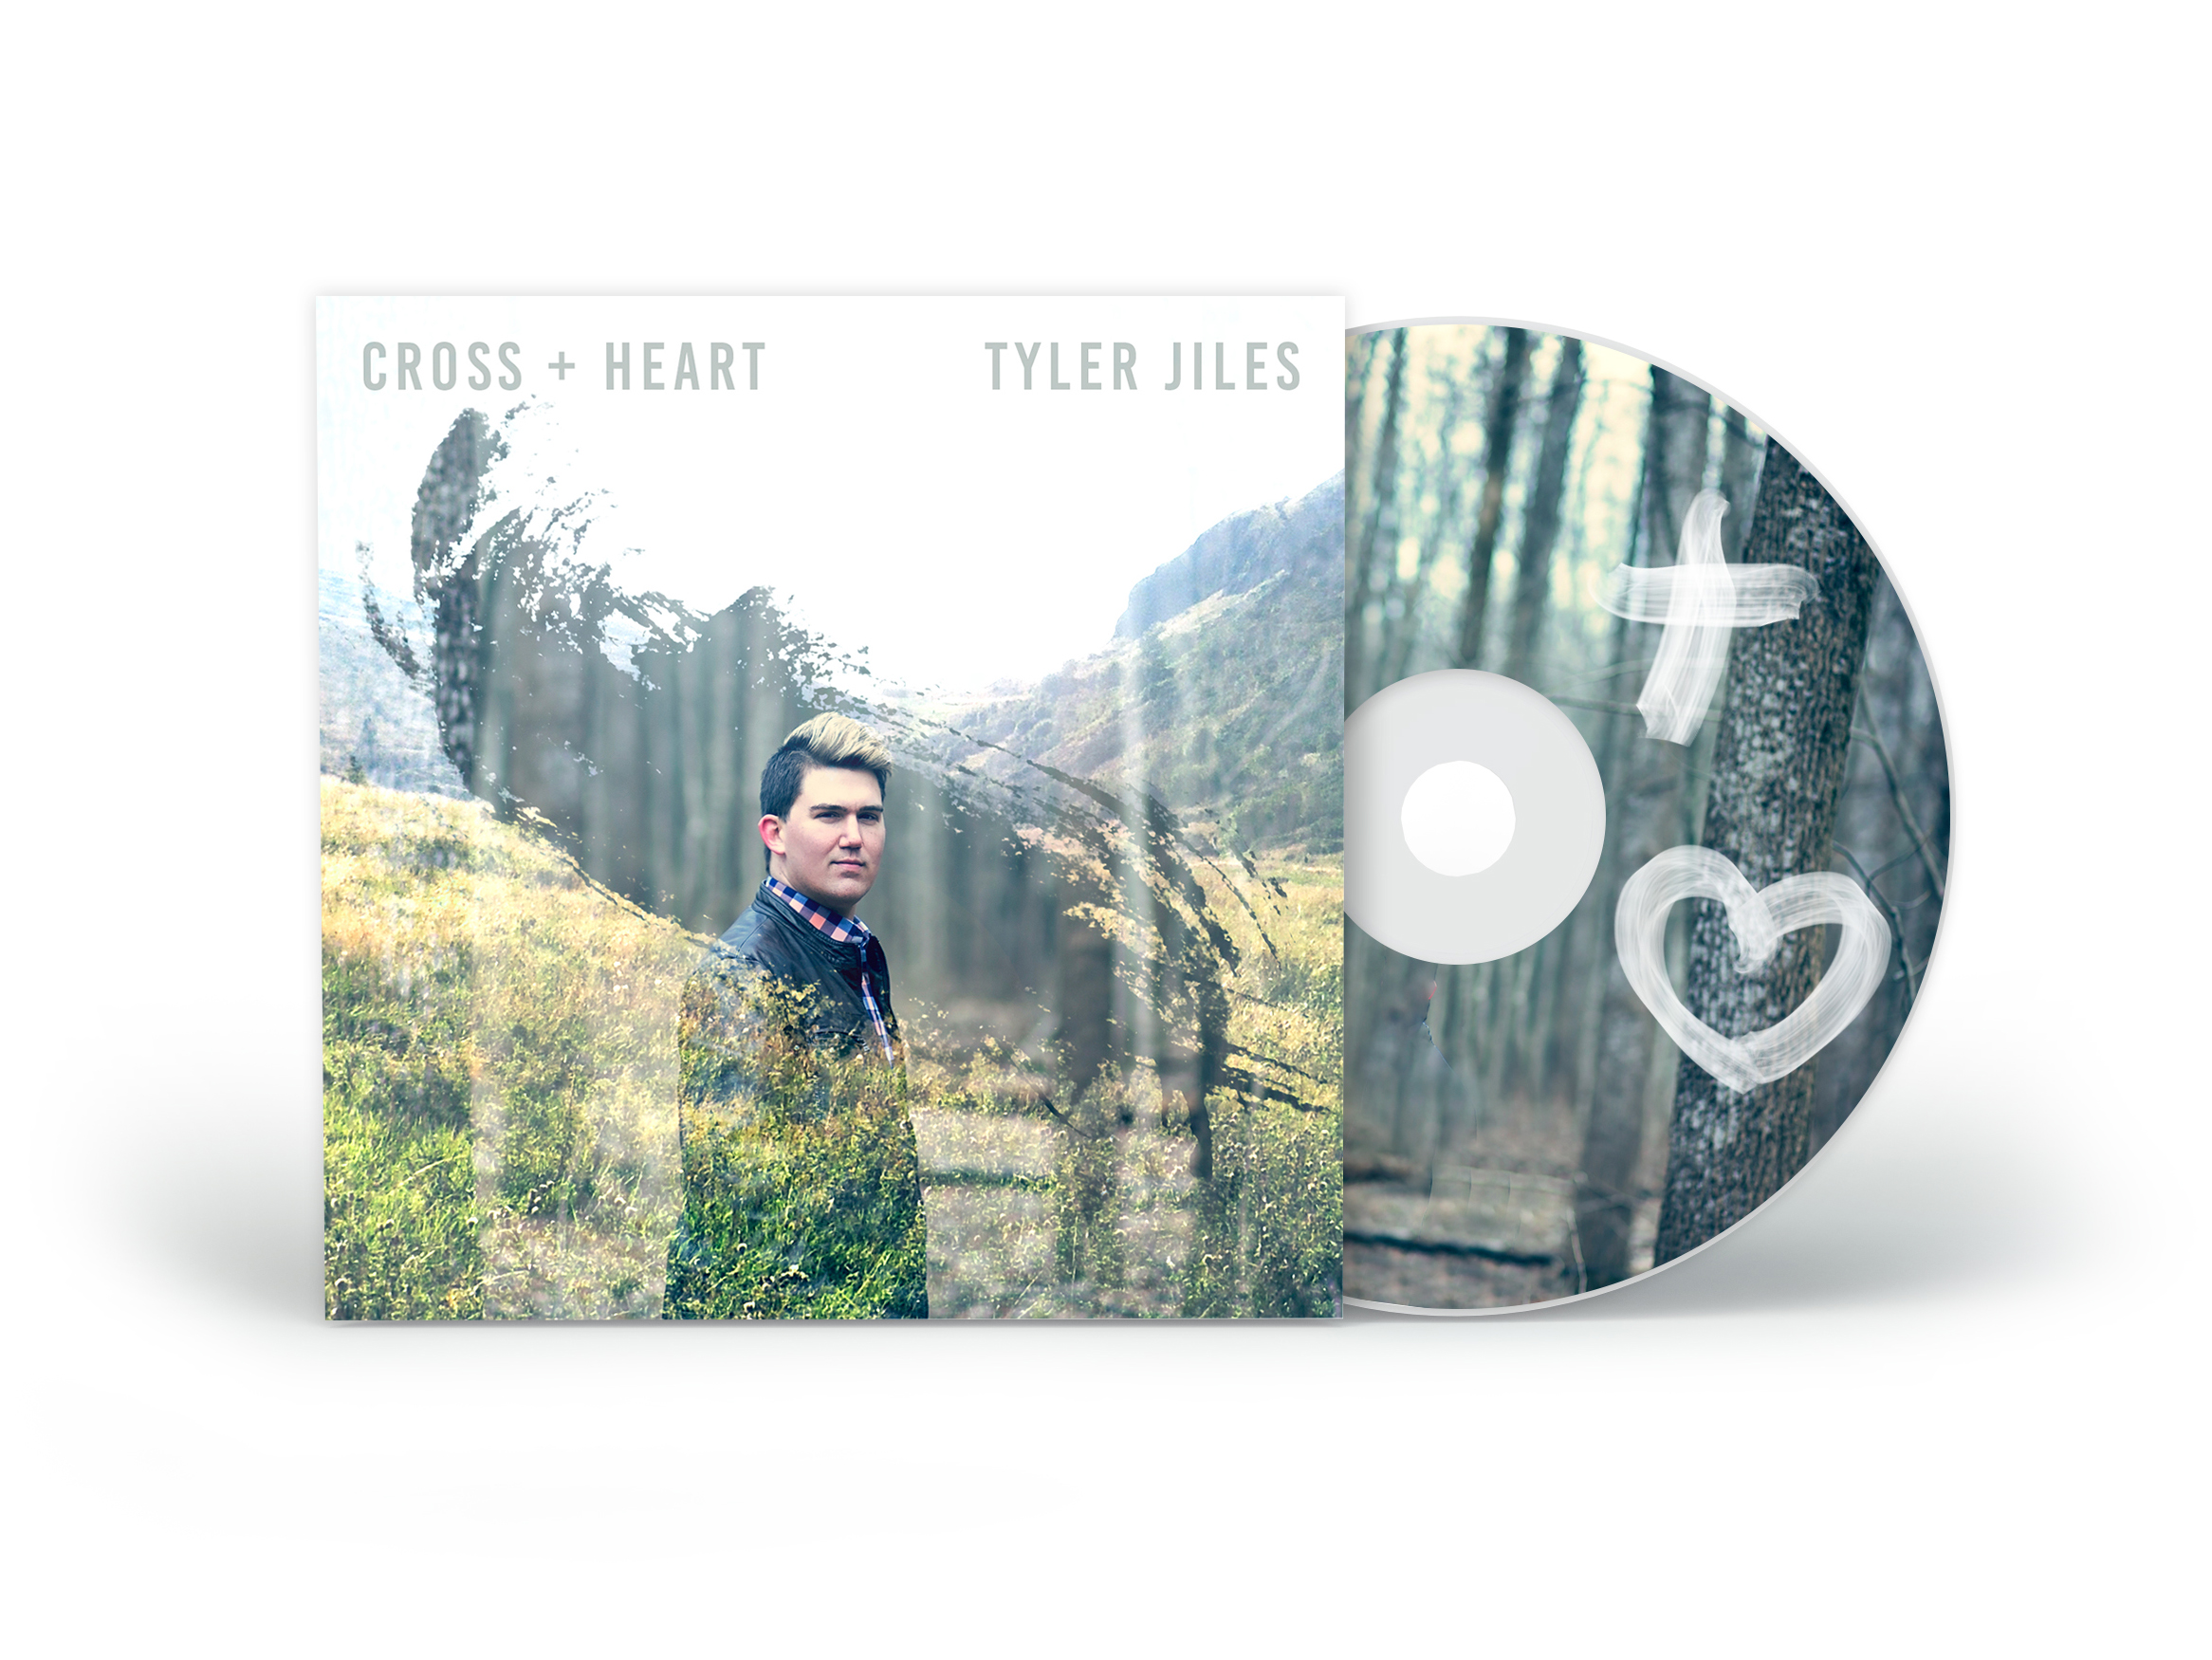 Cross + Heart, Tyler Jiles